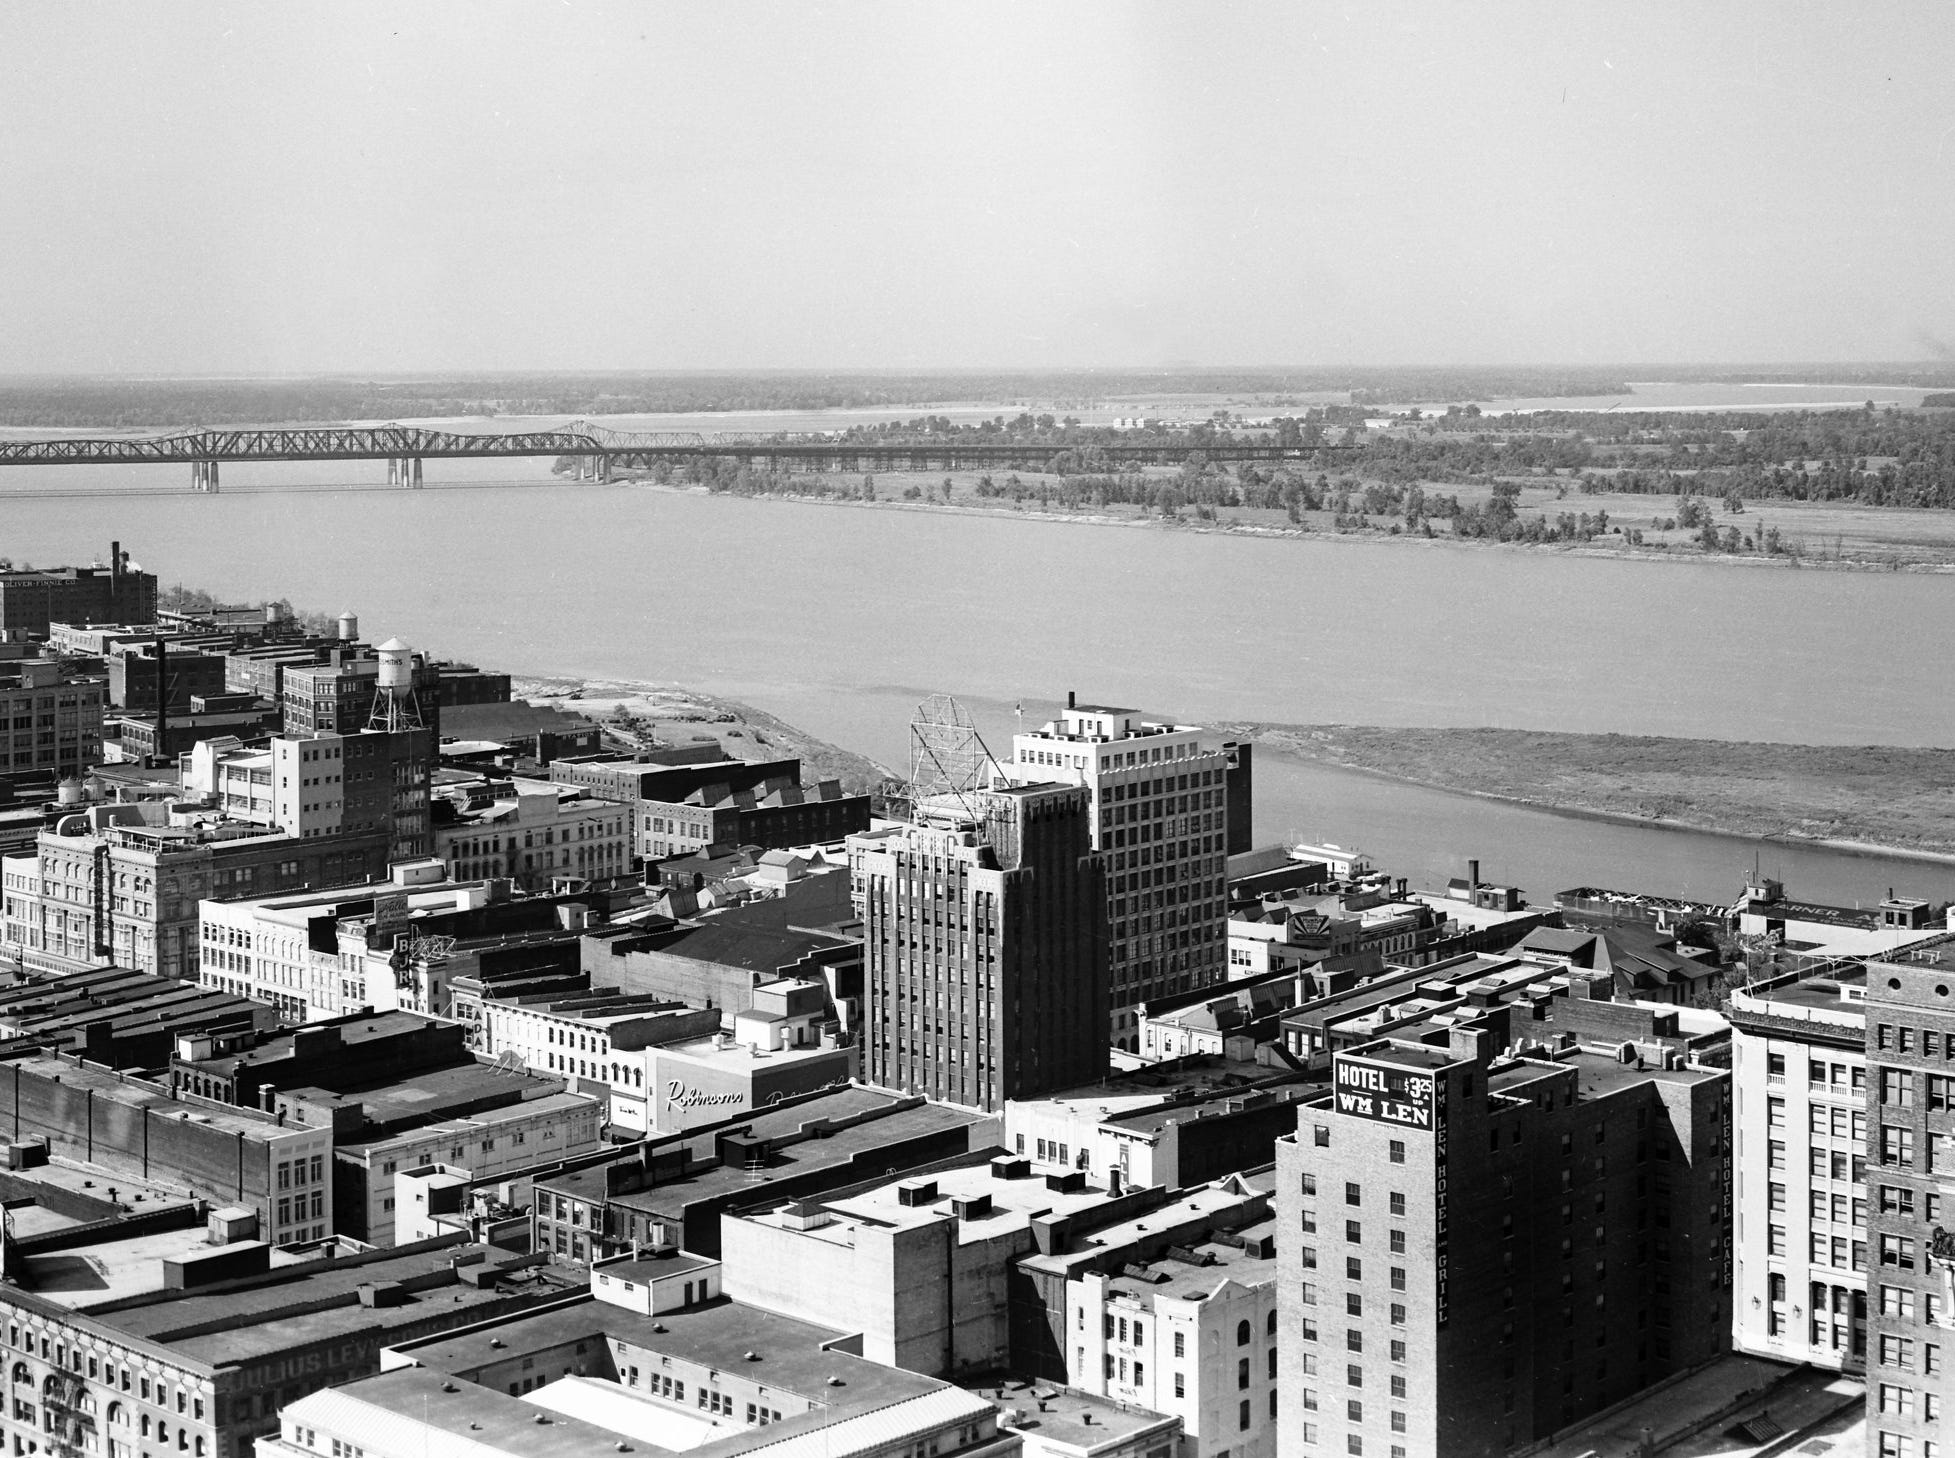 The most spectacular view in Memphis in September, 1951 is quite naturally from the roof of the most spectacular building in Memphis — the 365-foot Sterick Building, which opened in 1930.  Tallest building in the city, and loftiest in the South, excluding the Southwest, the 29-floor building is a small city with a great city.  For breathtaking beauty, it is hard to better this view of the lazy Mississippi River rolling by Memphis' doorstep, as caught from the building's roof.